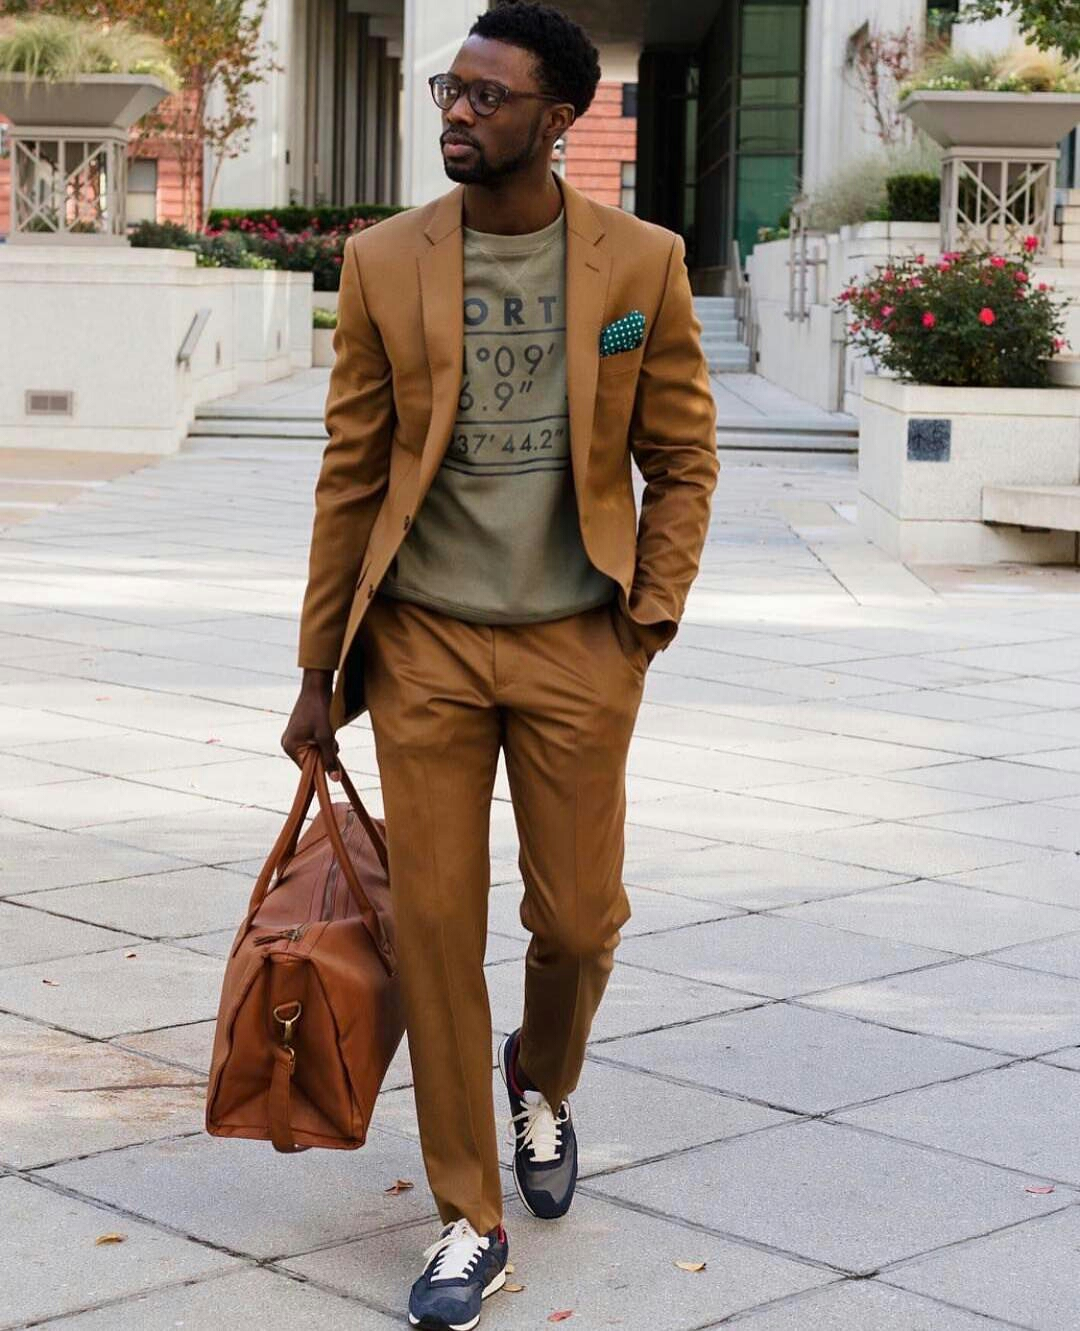 20 Modern Men's Suit Styles that Are Too Cool for Words11